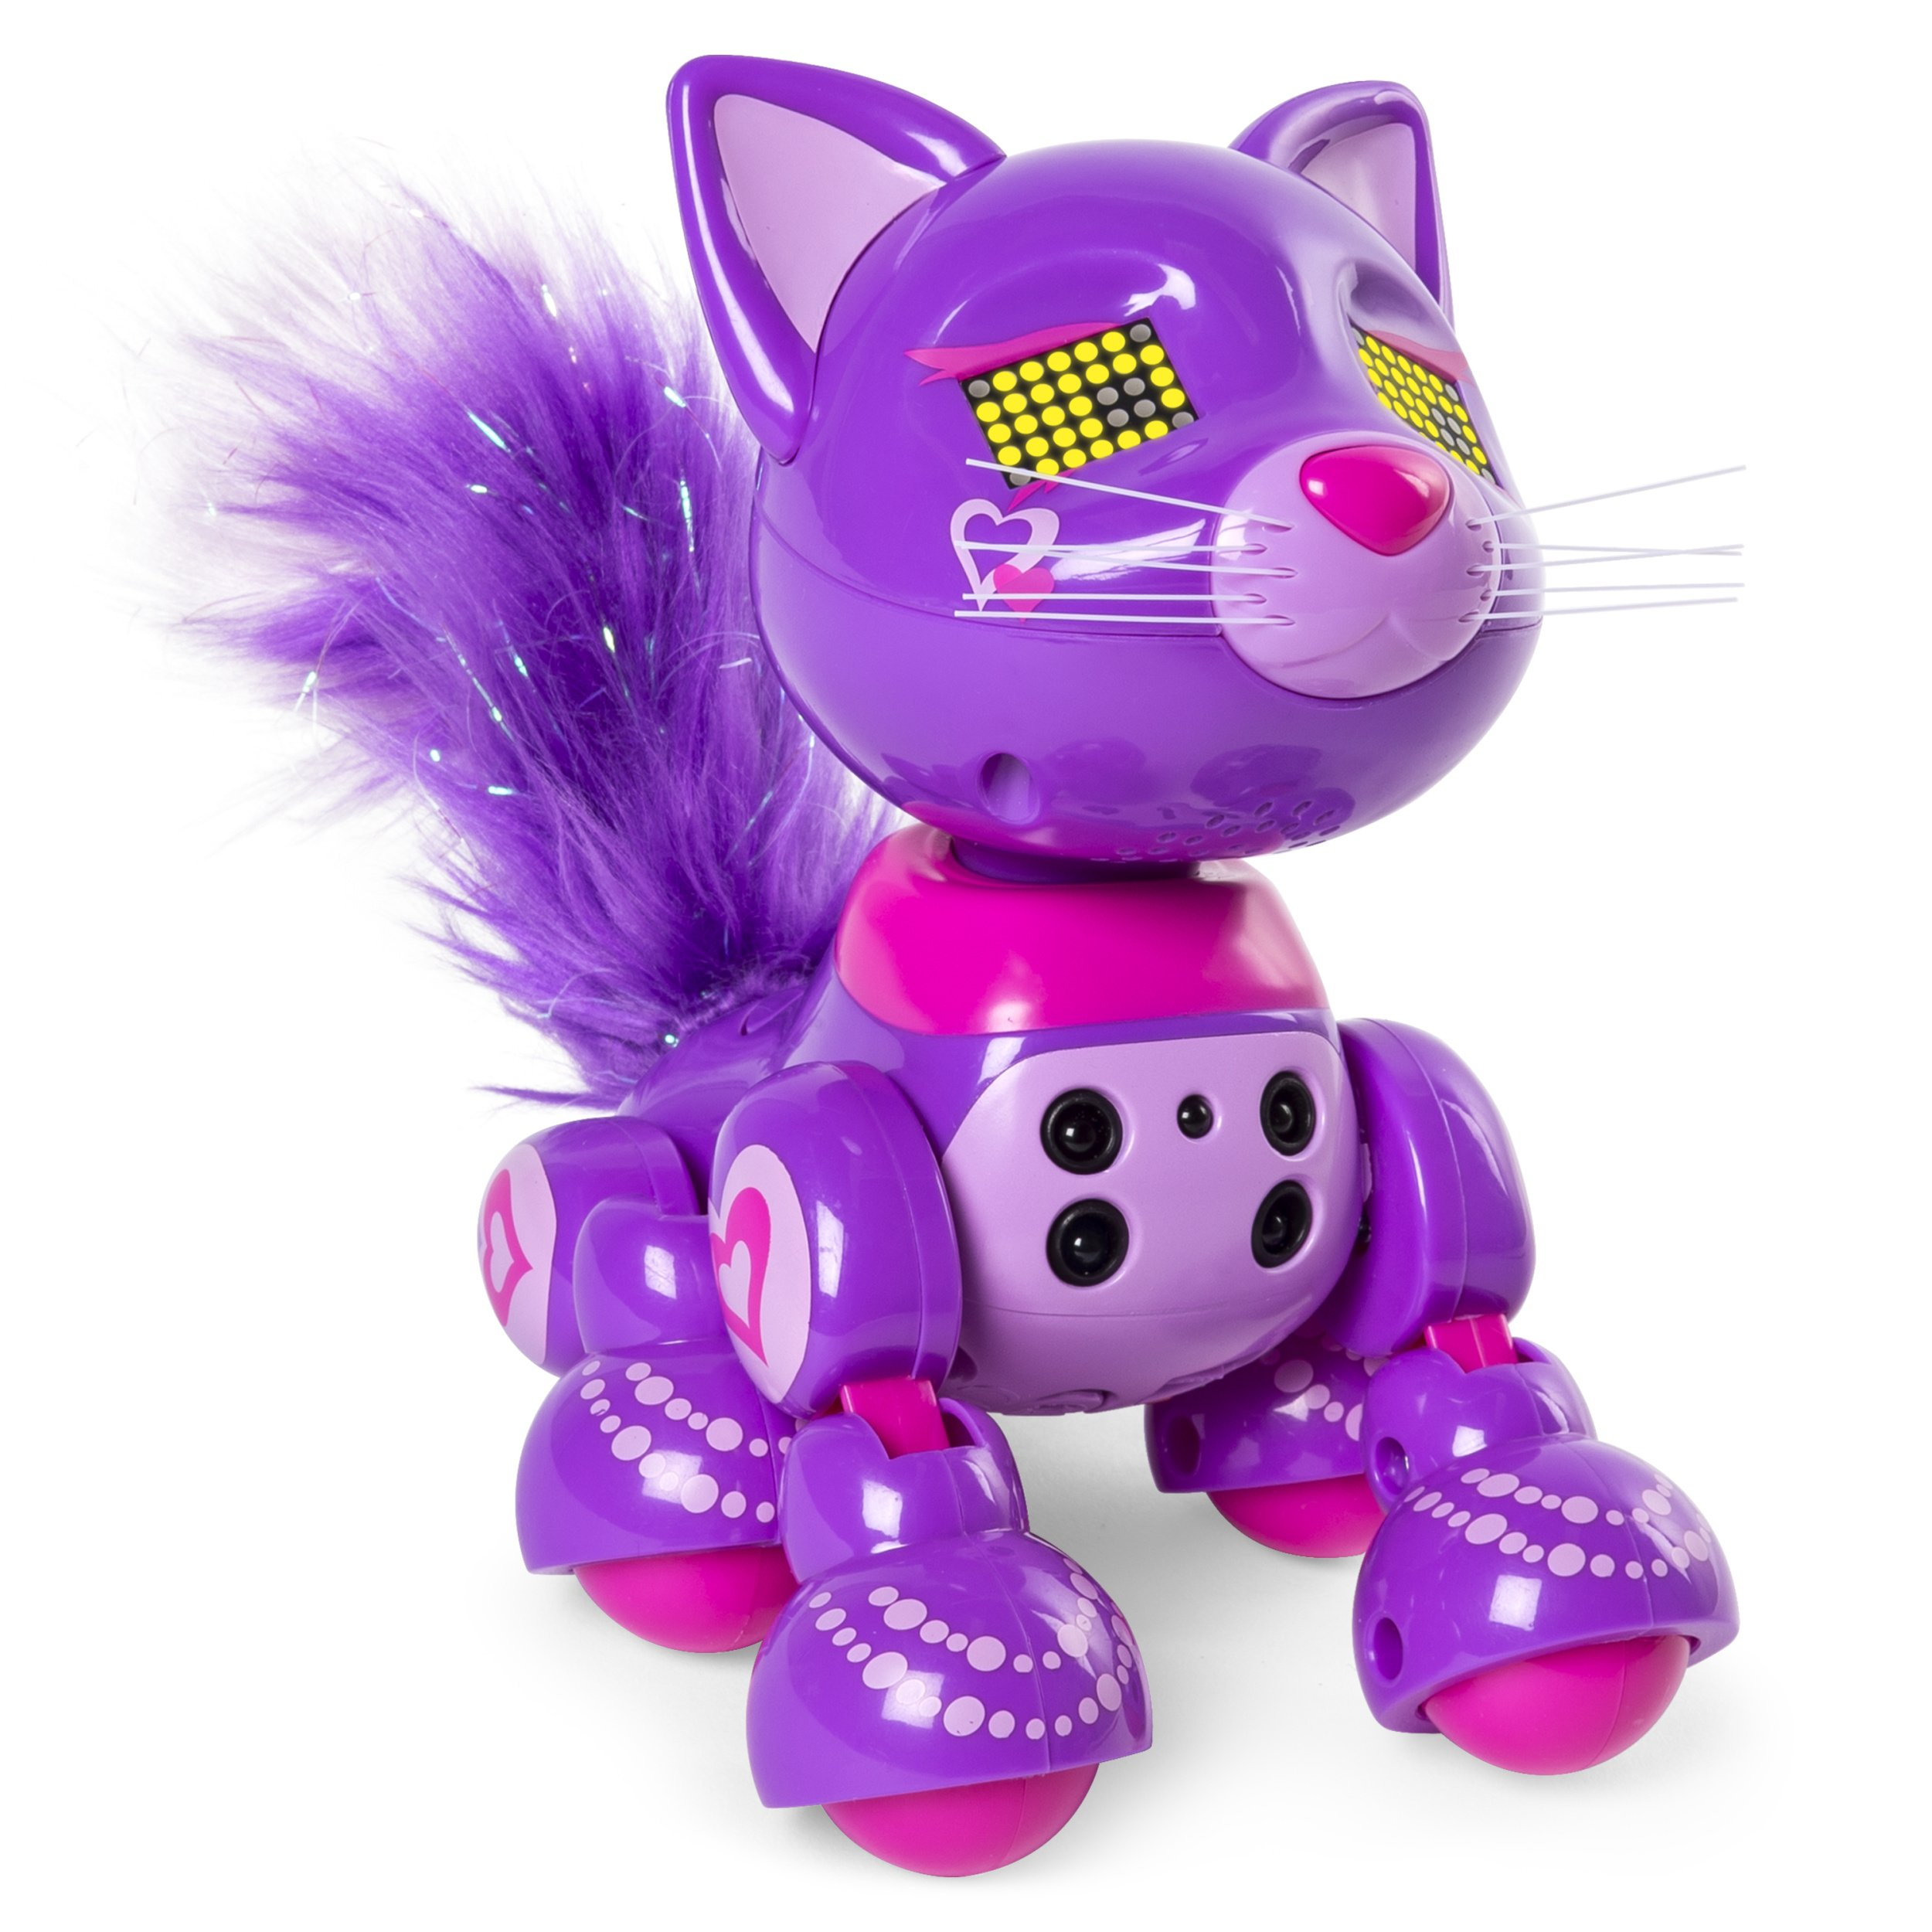 Zoomer Meowzies, Posh, Interactive Kitten with Lights, Sounds and Sensors by Zoomer (Image #1)